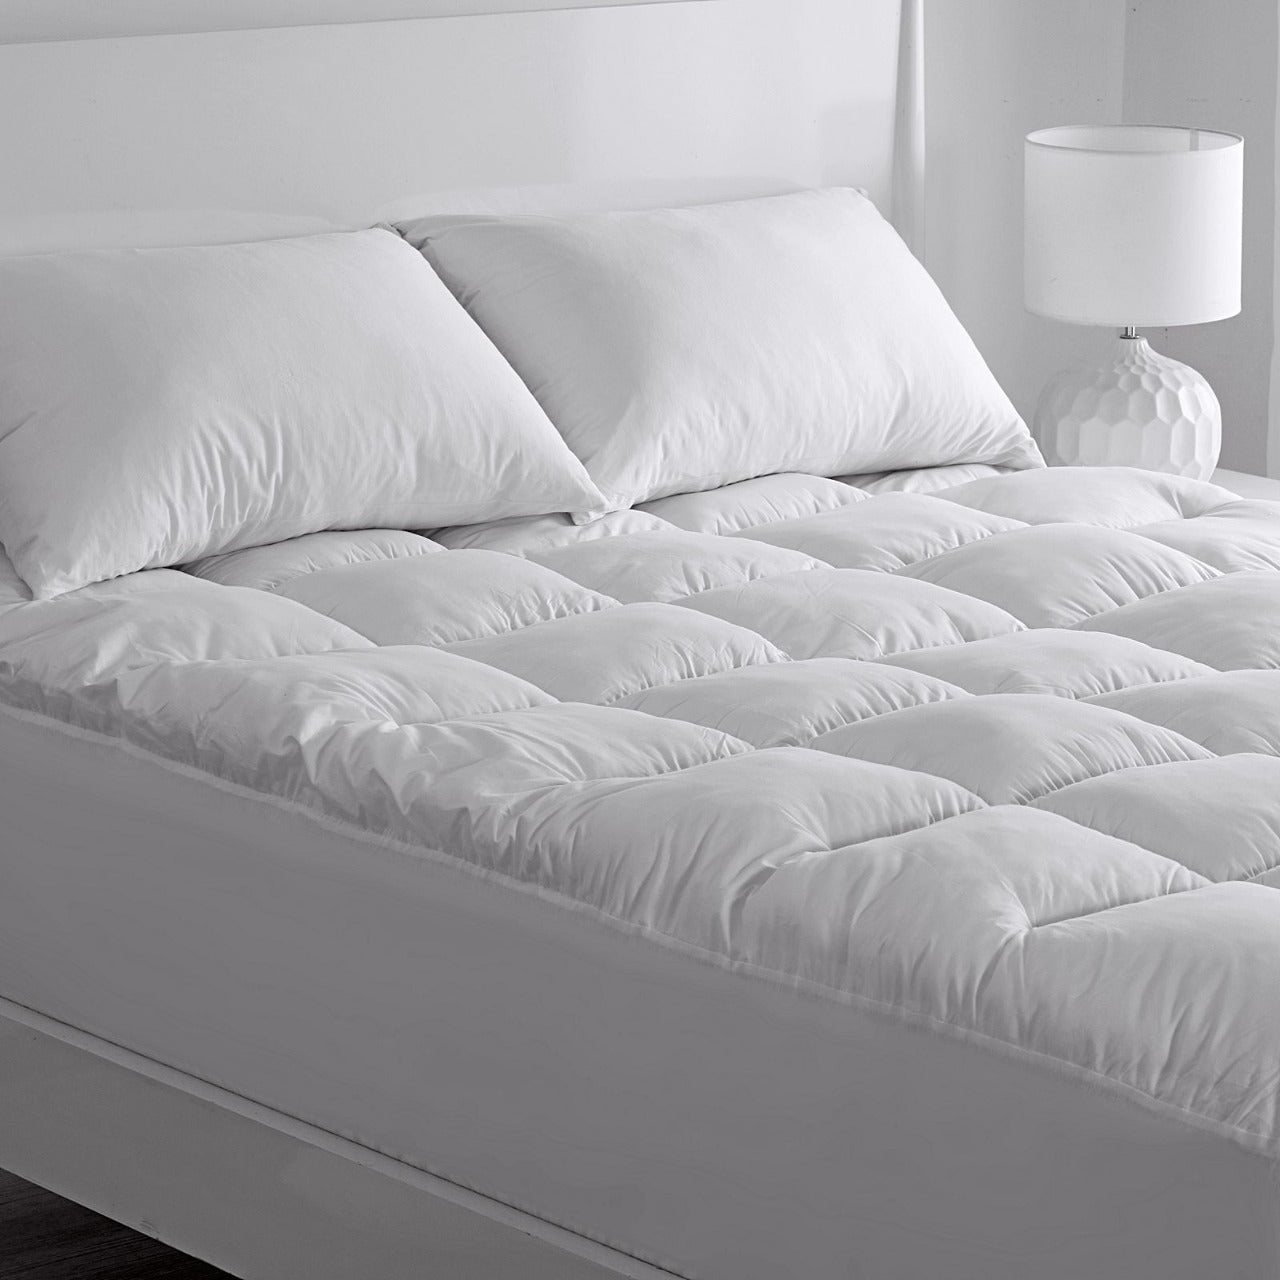 Mattress Topper (Pack of 6 Units)